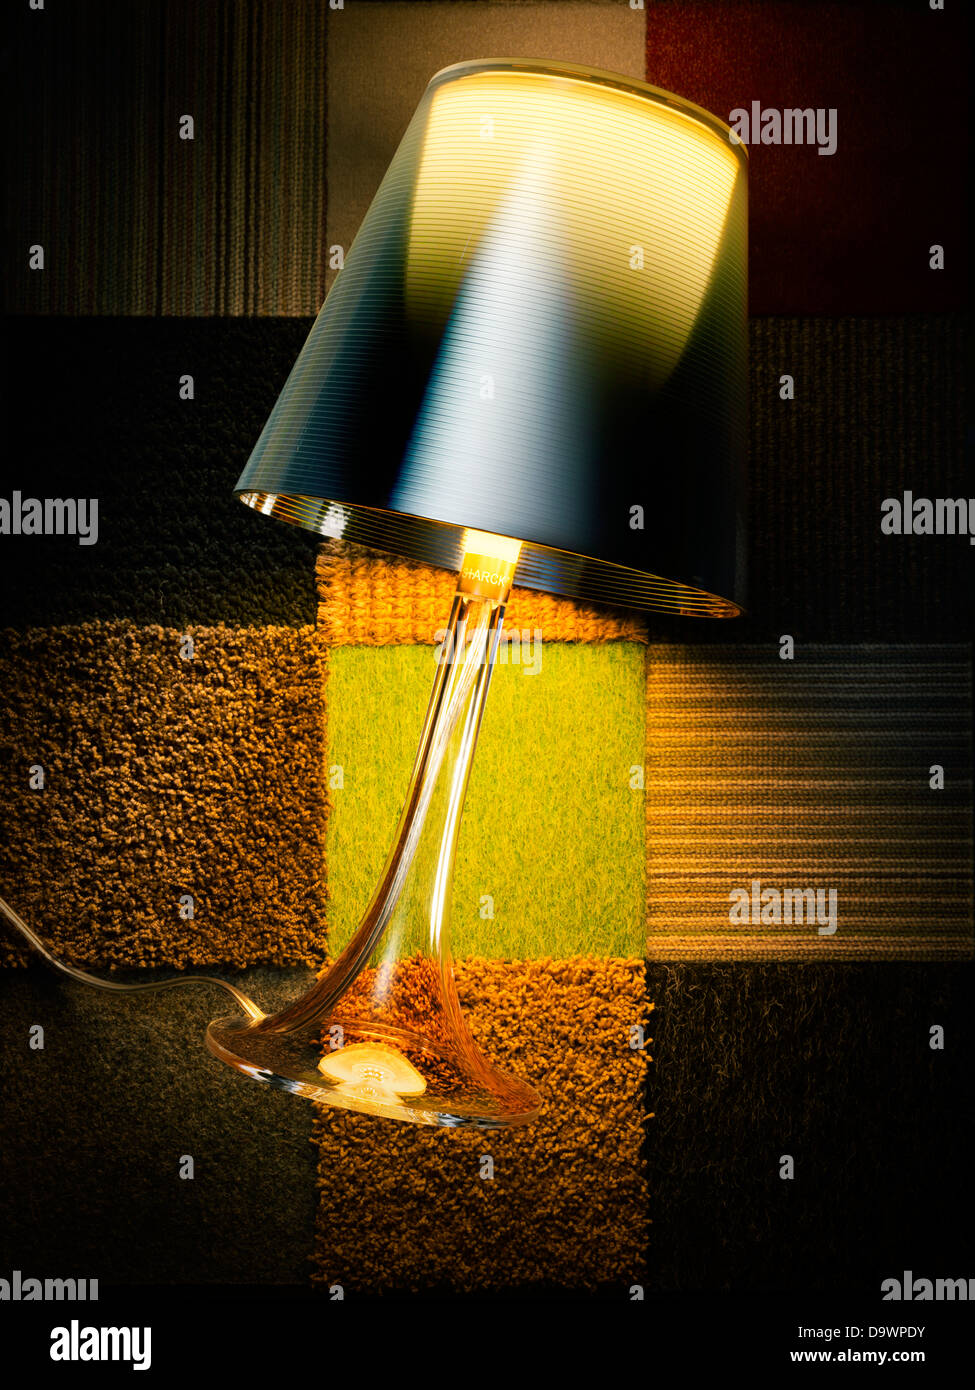 lamp on a rug - Stock Image